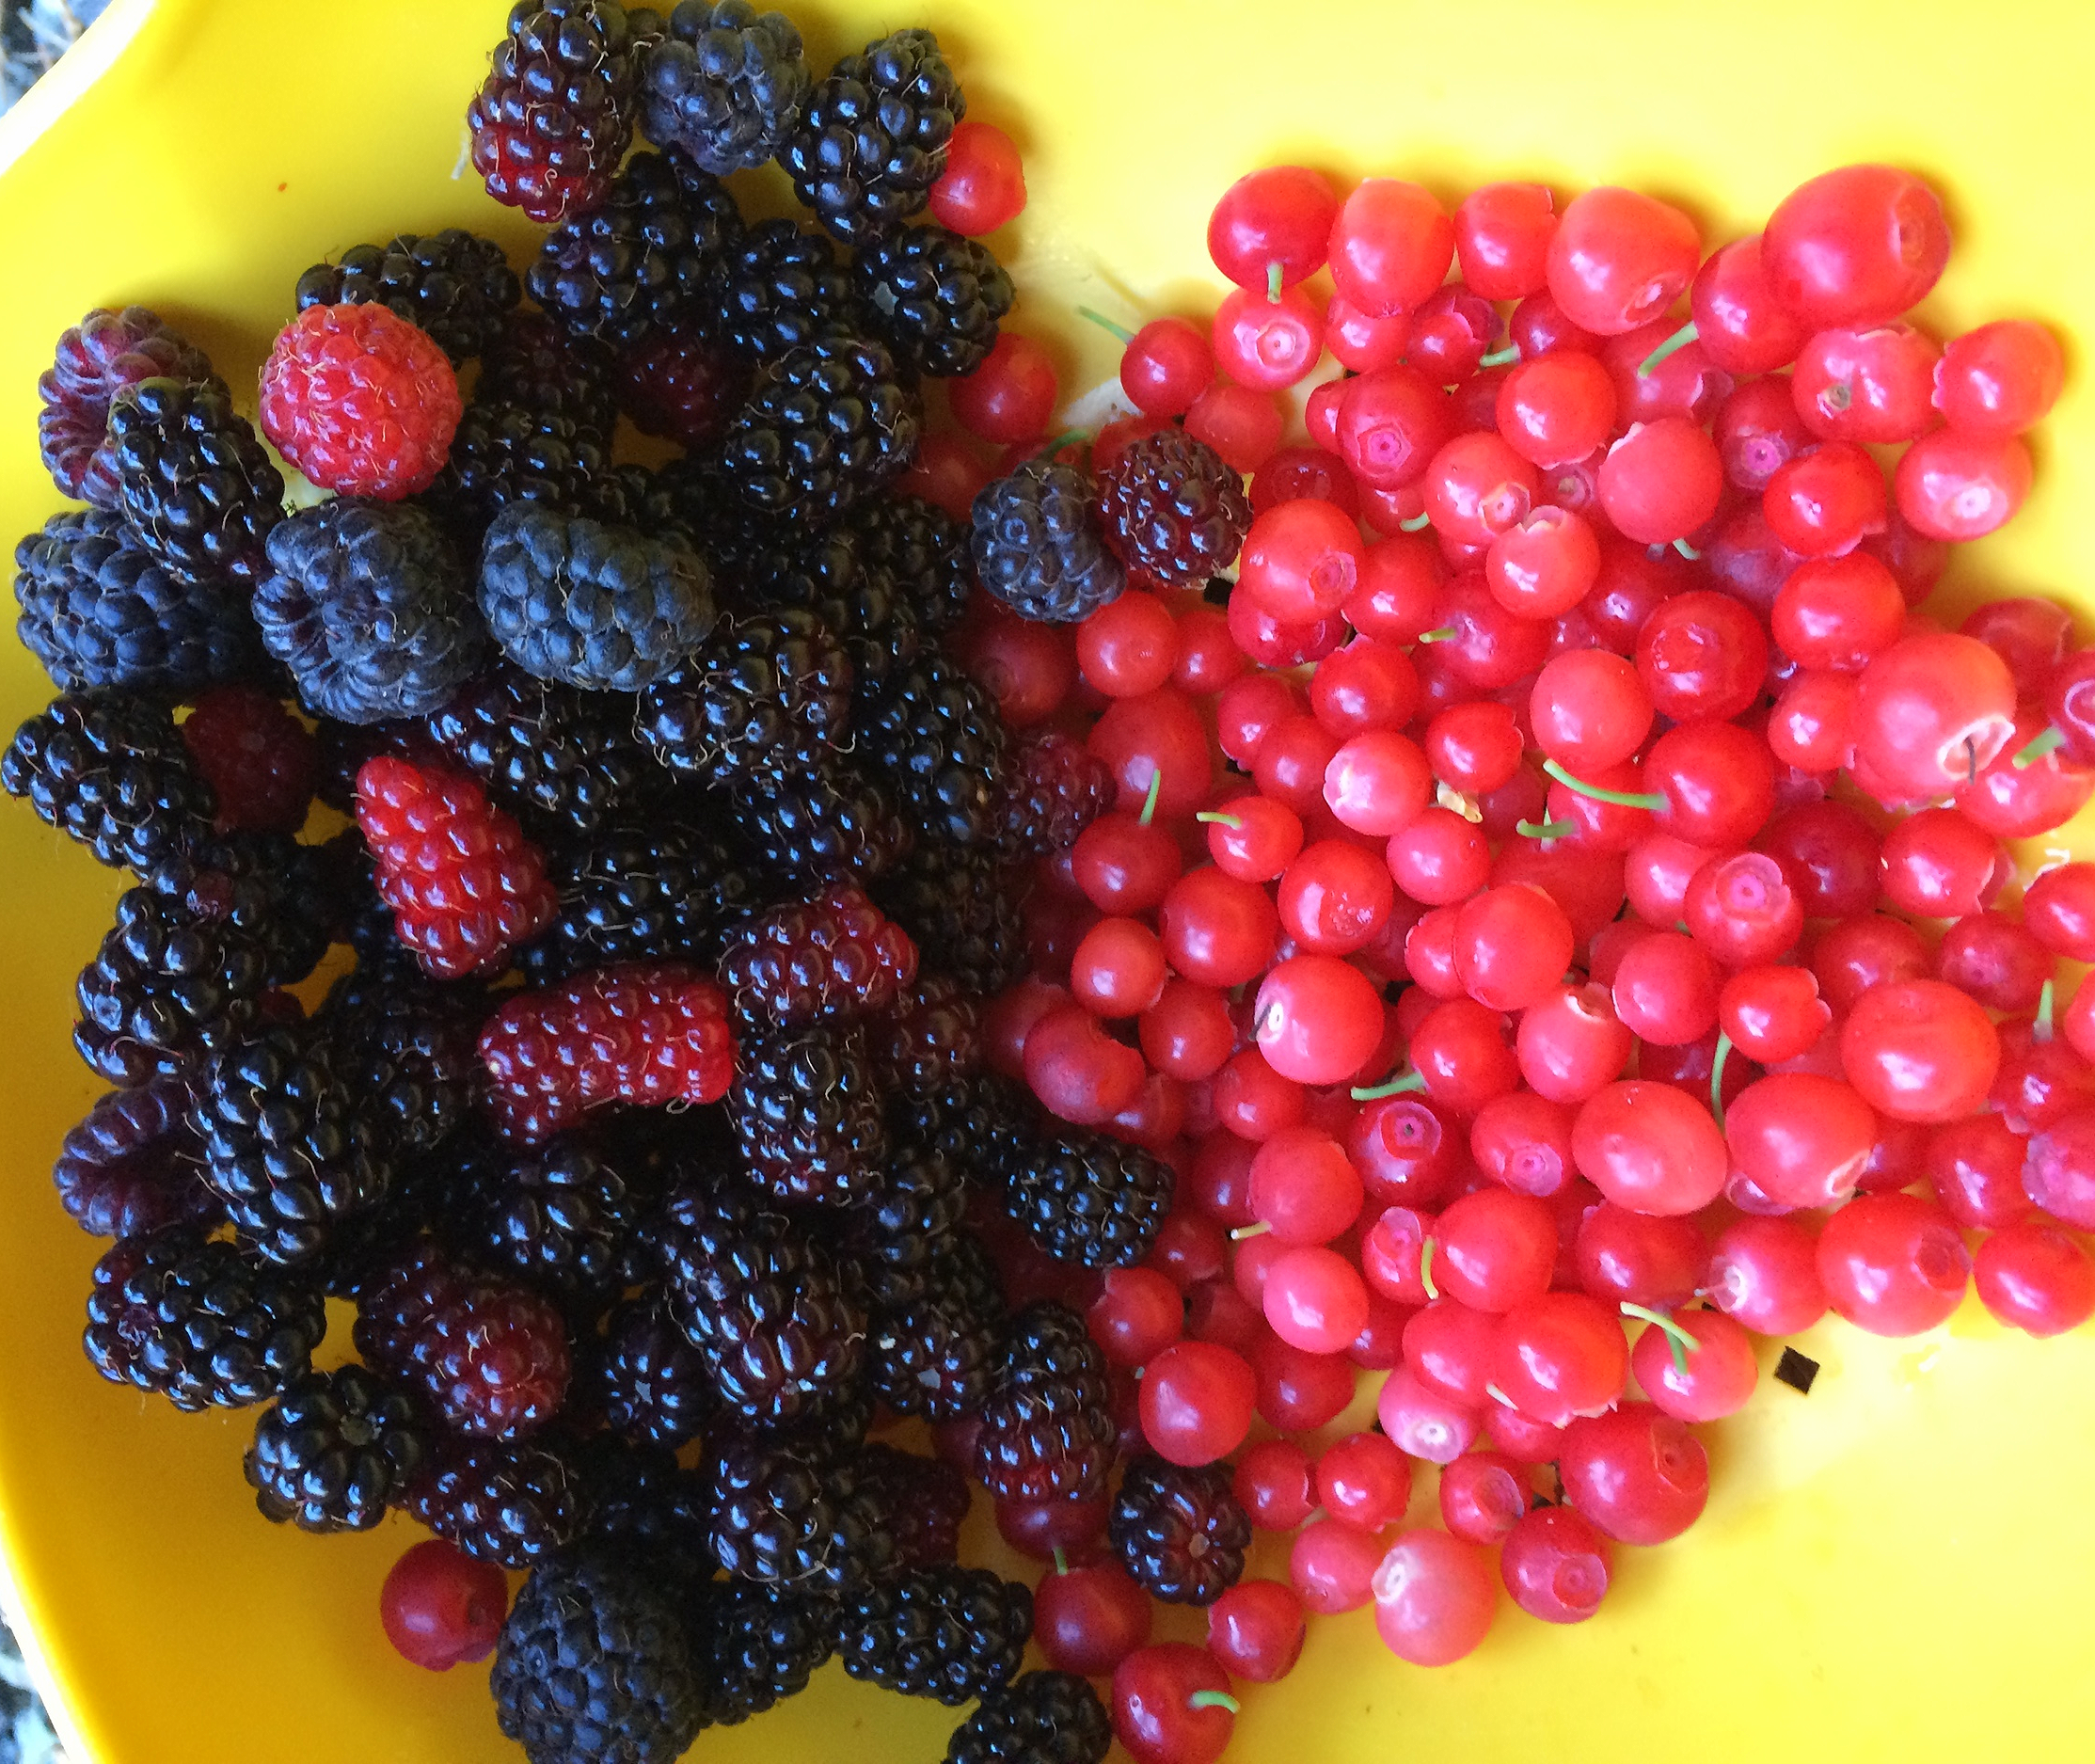 A couple thimbleberries, marionberries and red huckleberries fresh from our yard.